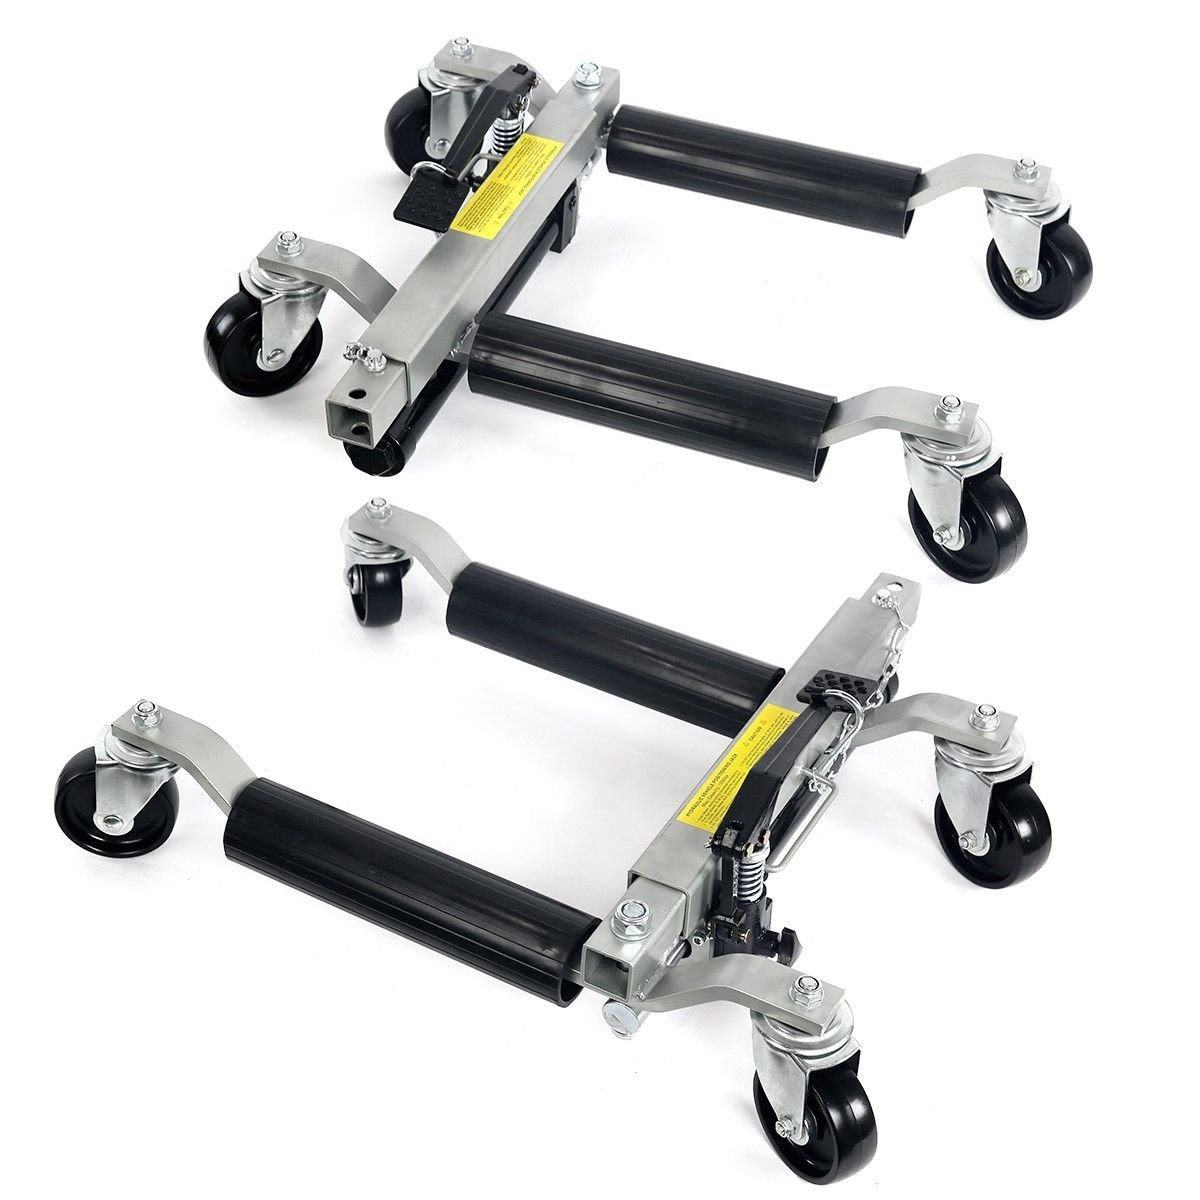 Rison® 2pc 1500lb HYDRAULIC Positioning Car Wheel Dolly Jack Lift hoists Moving Vehicle by Rison® (Image #1)